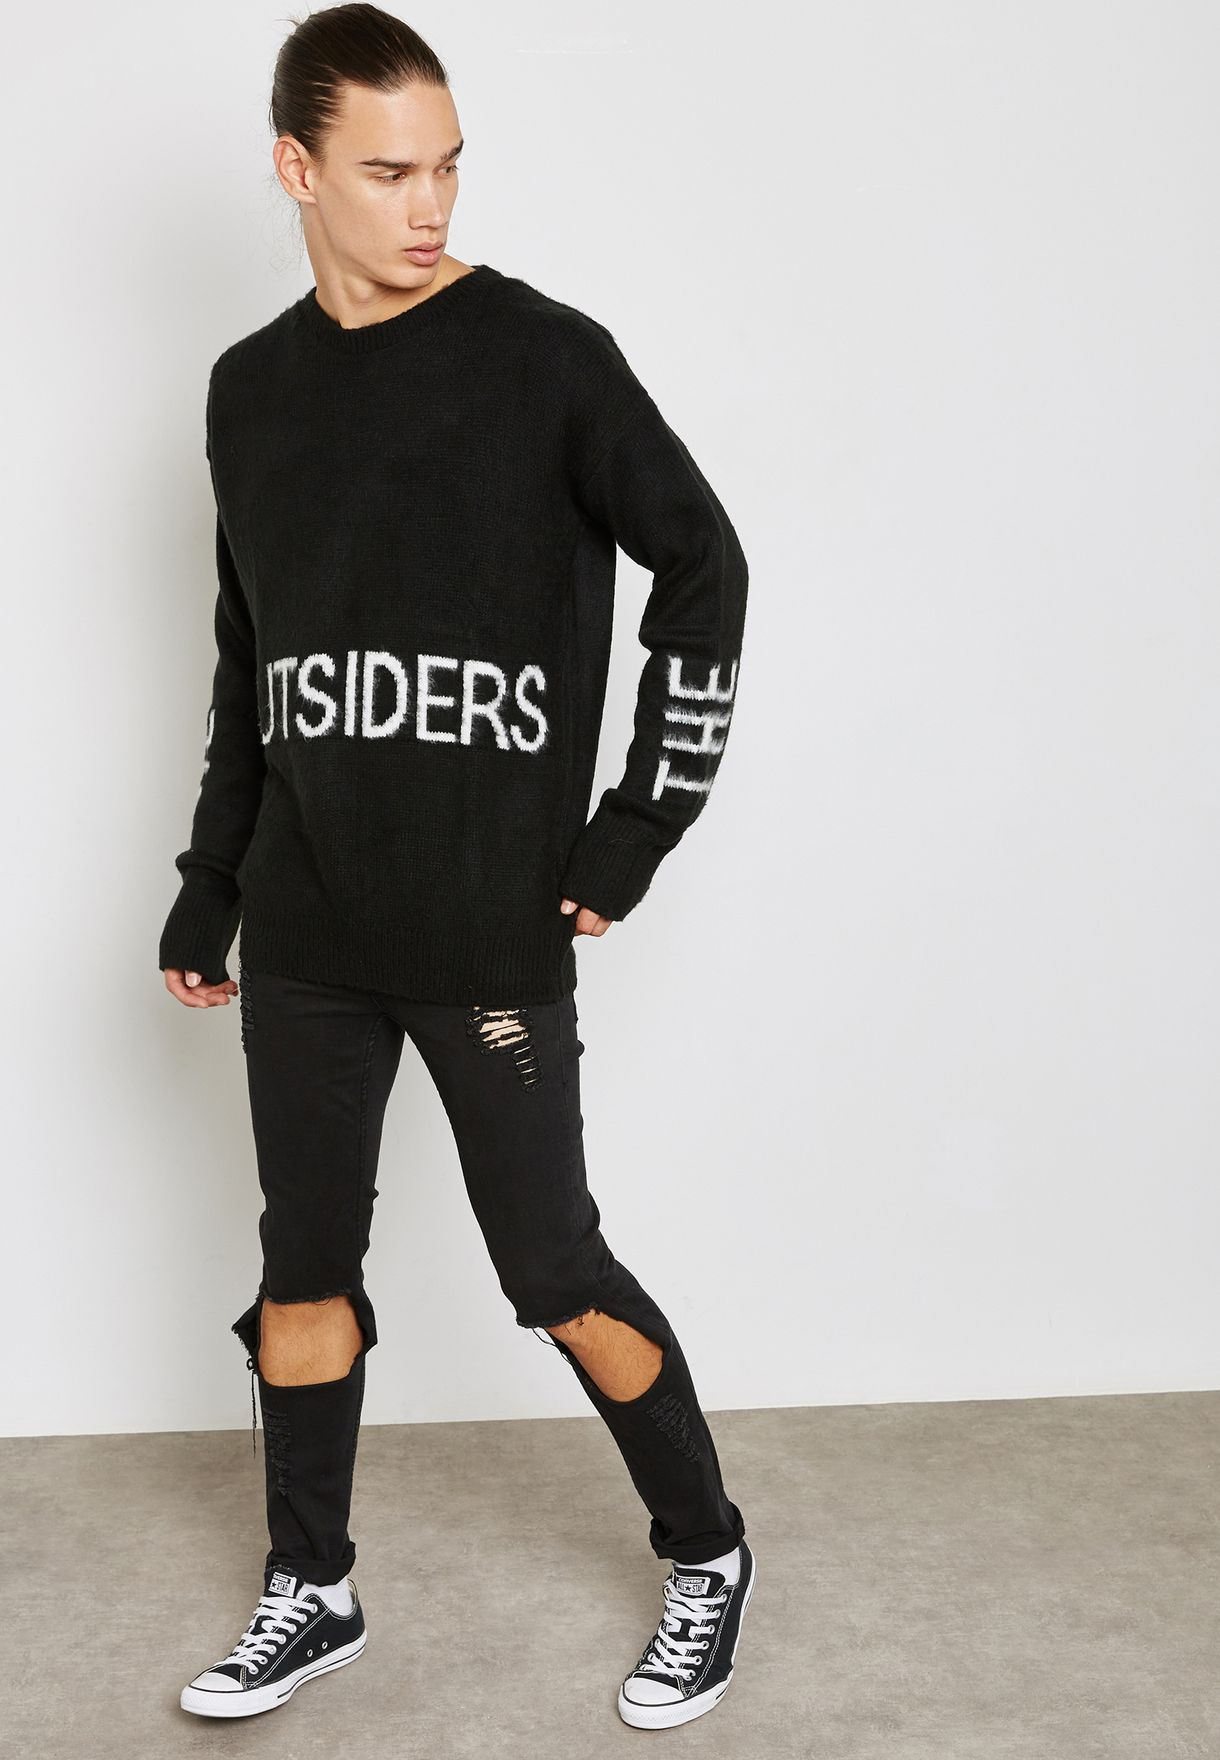 Outsiders Sweater